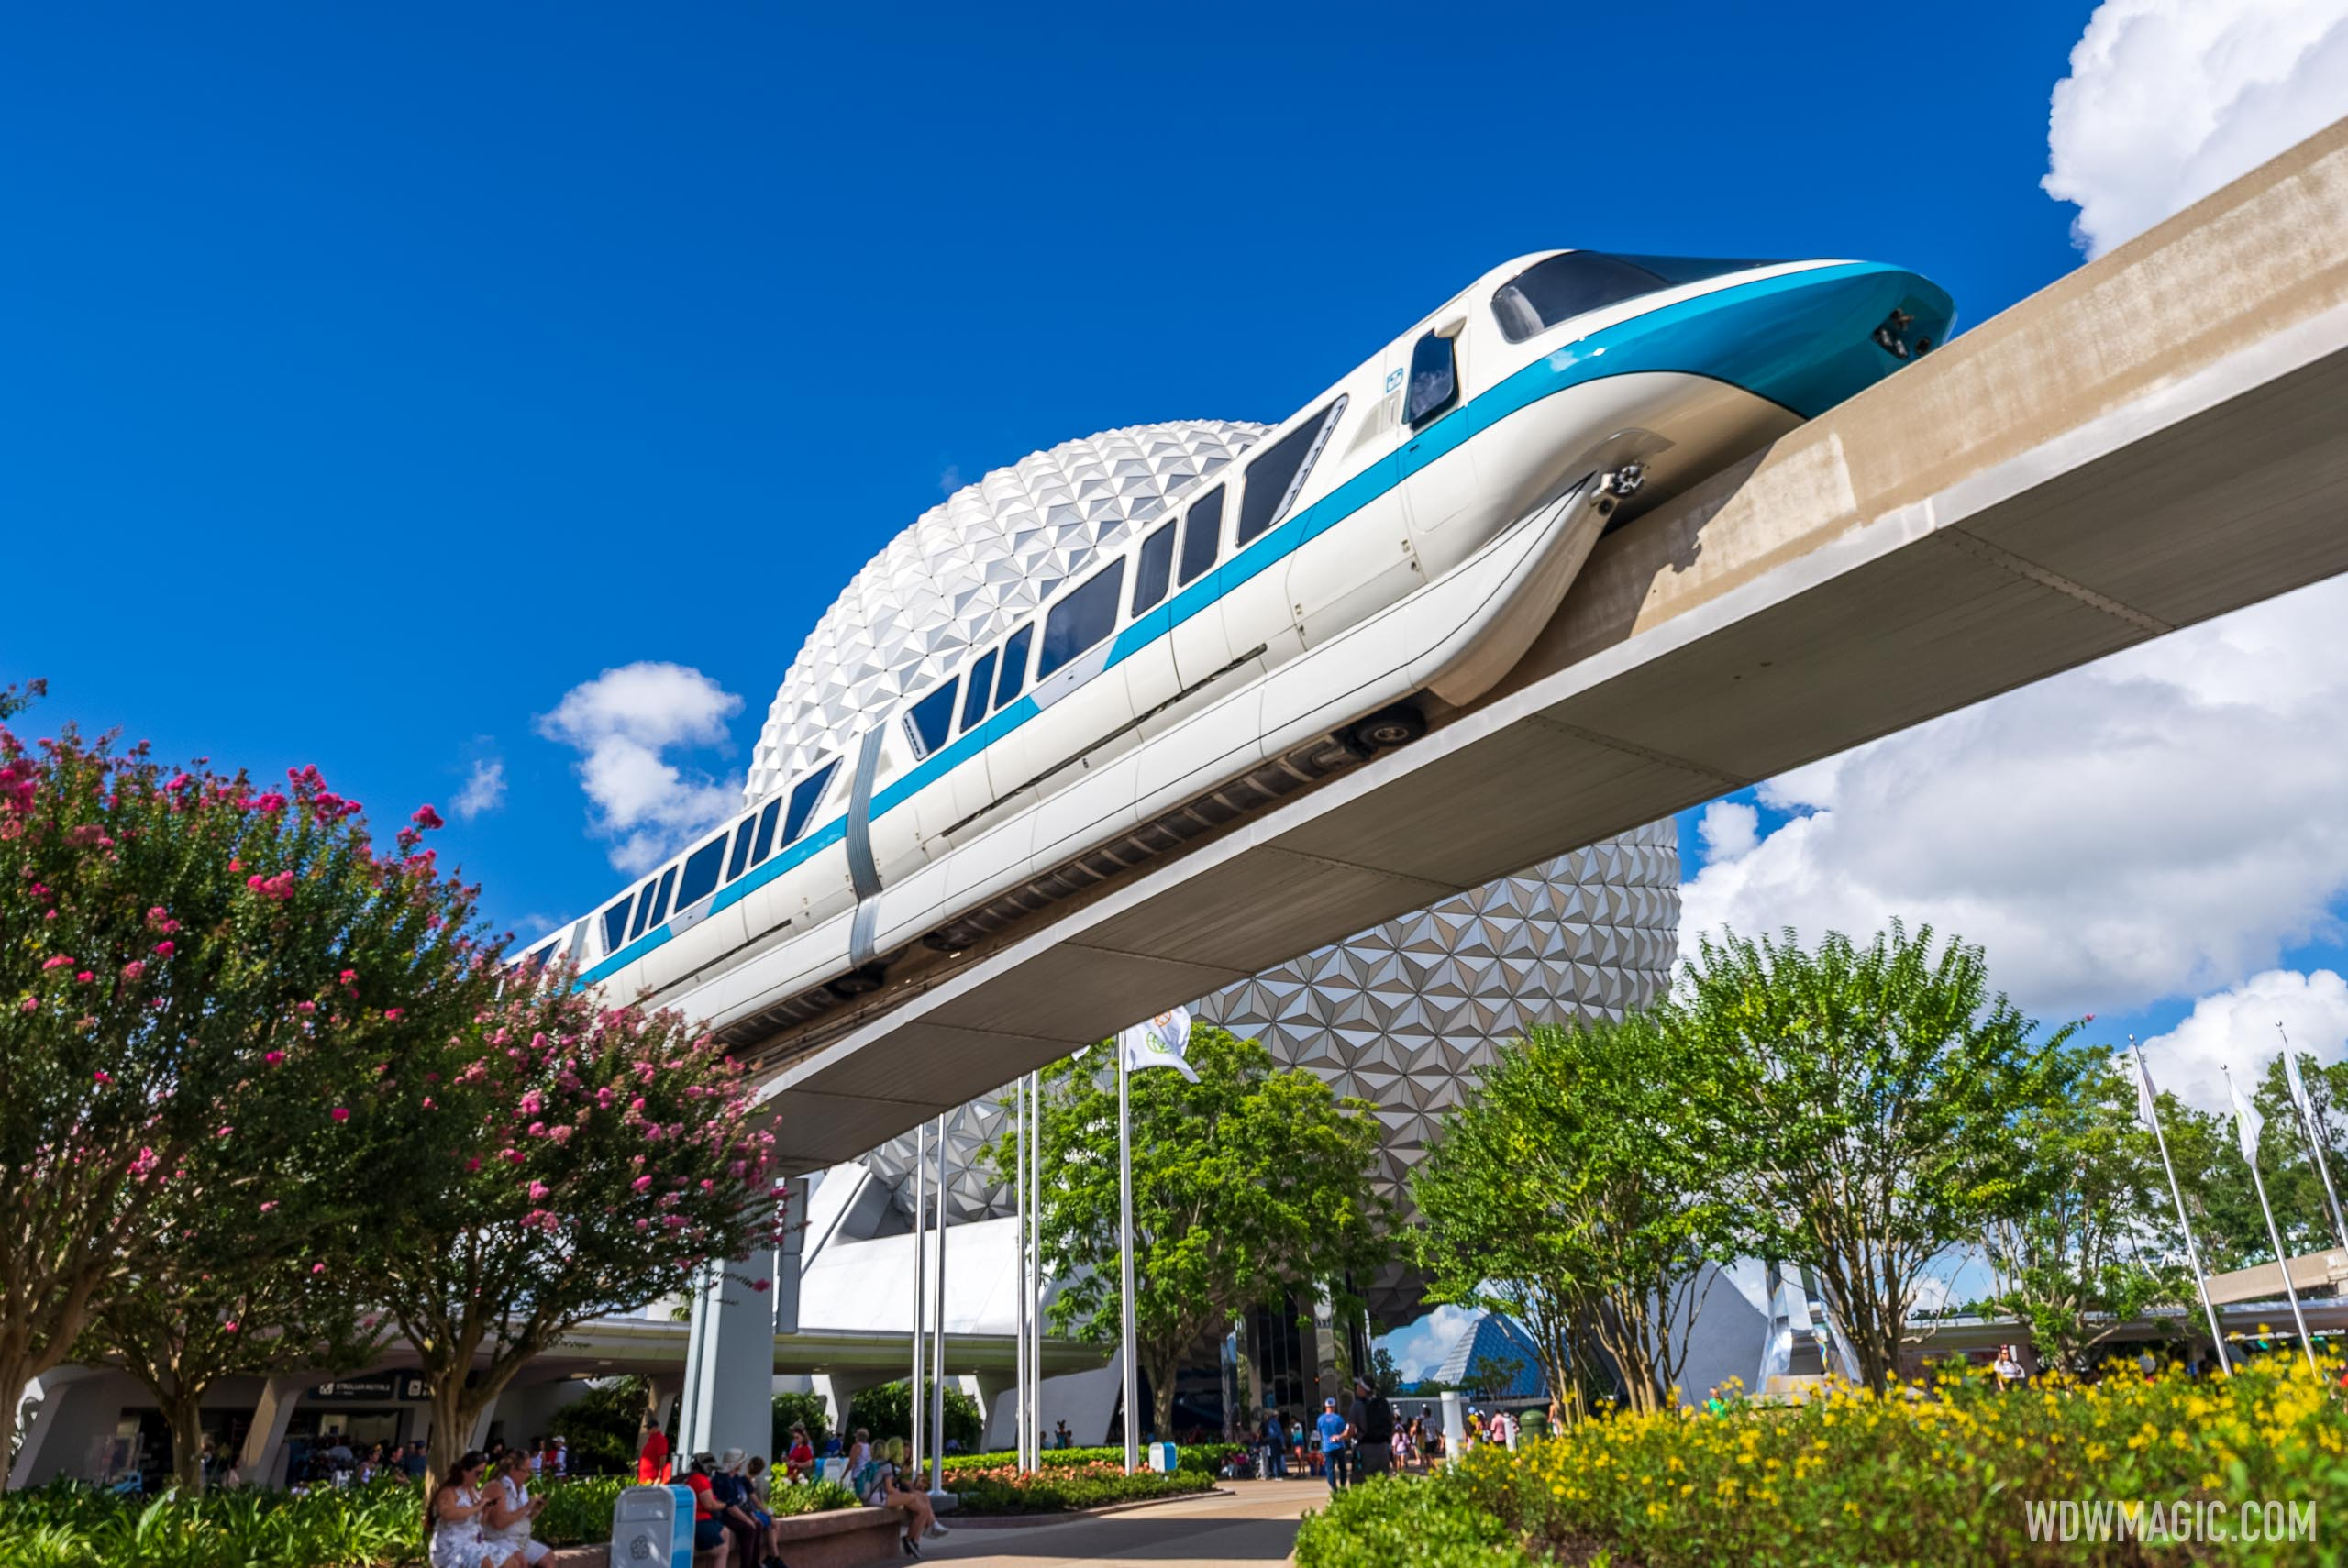 Walt Disney World Monorail System returns to EPCOT after 16 month closure